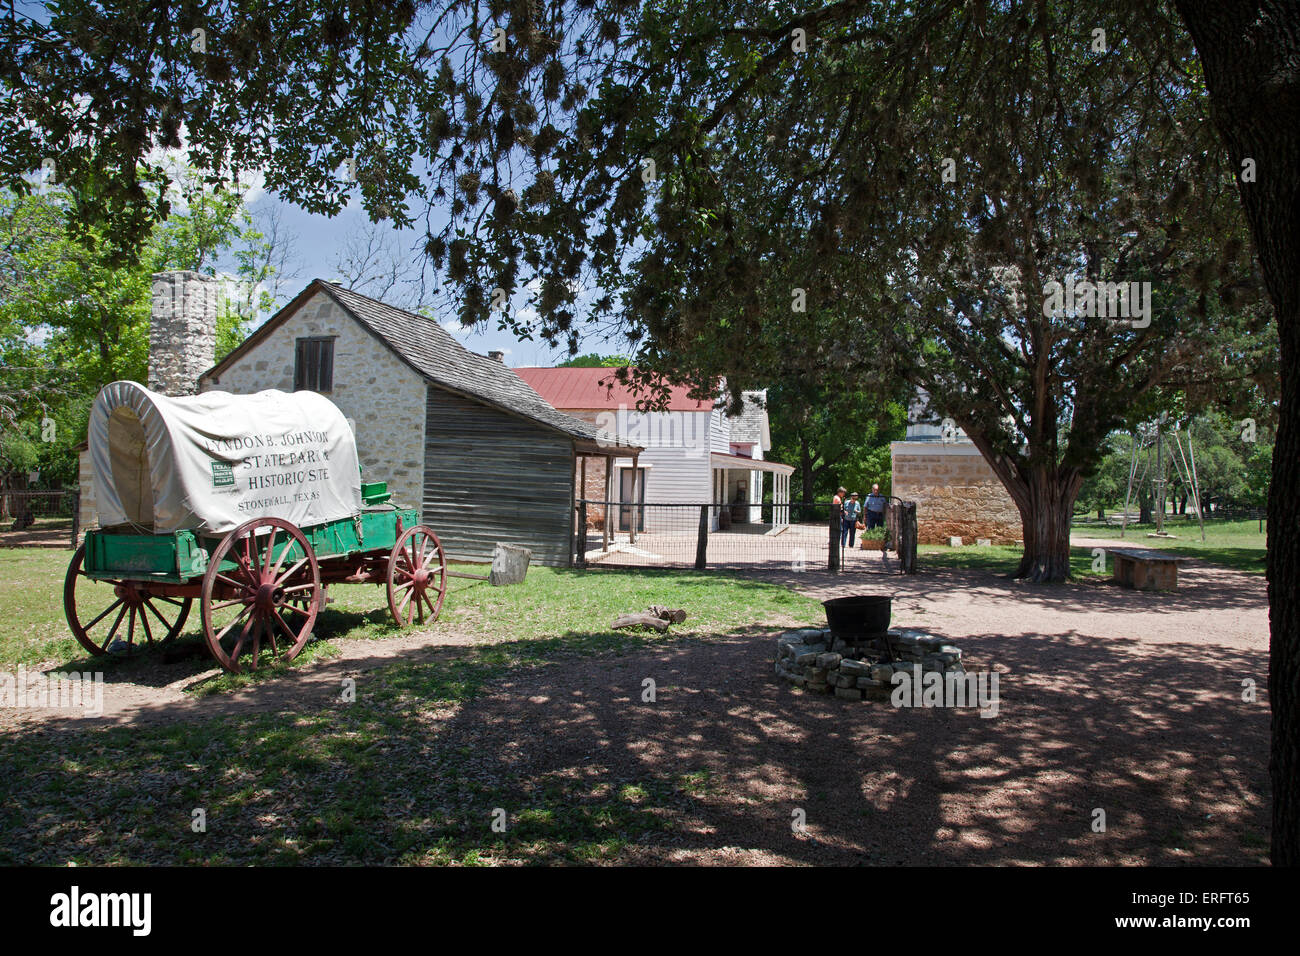 Two original homes form the heart of the Sauer-Beckman Living History Farm, LBJ State Park, Stonewall, Texas. - Stock Image